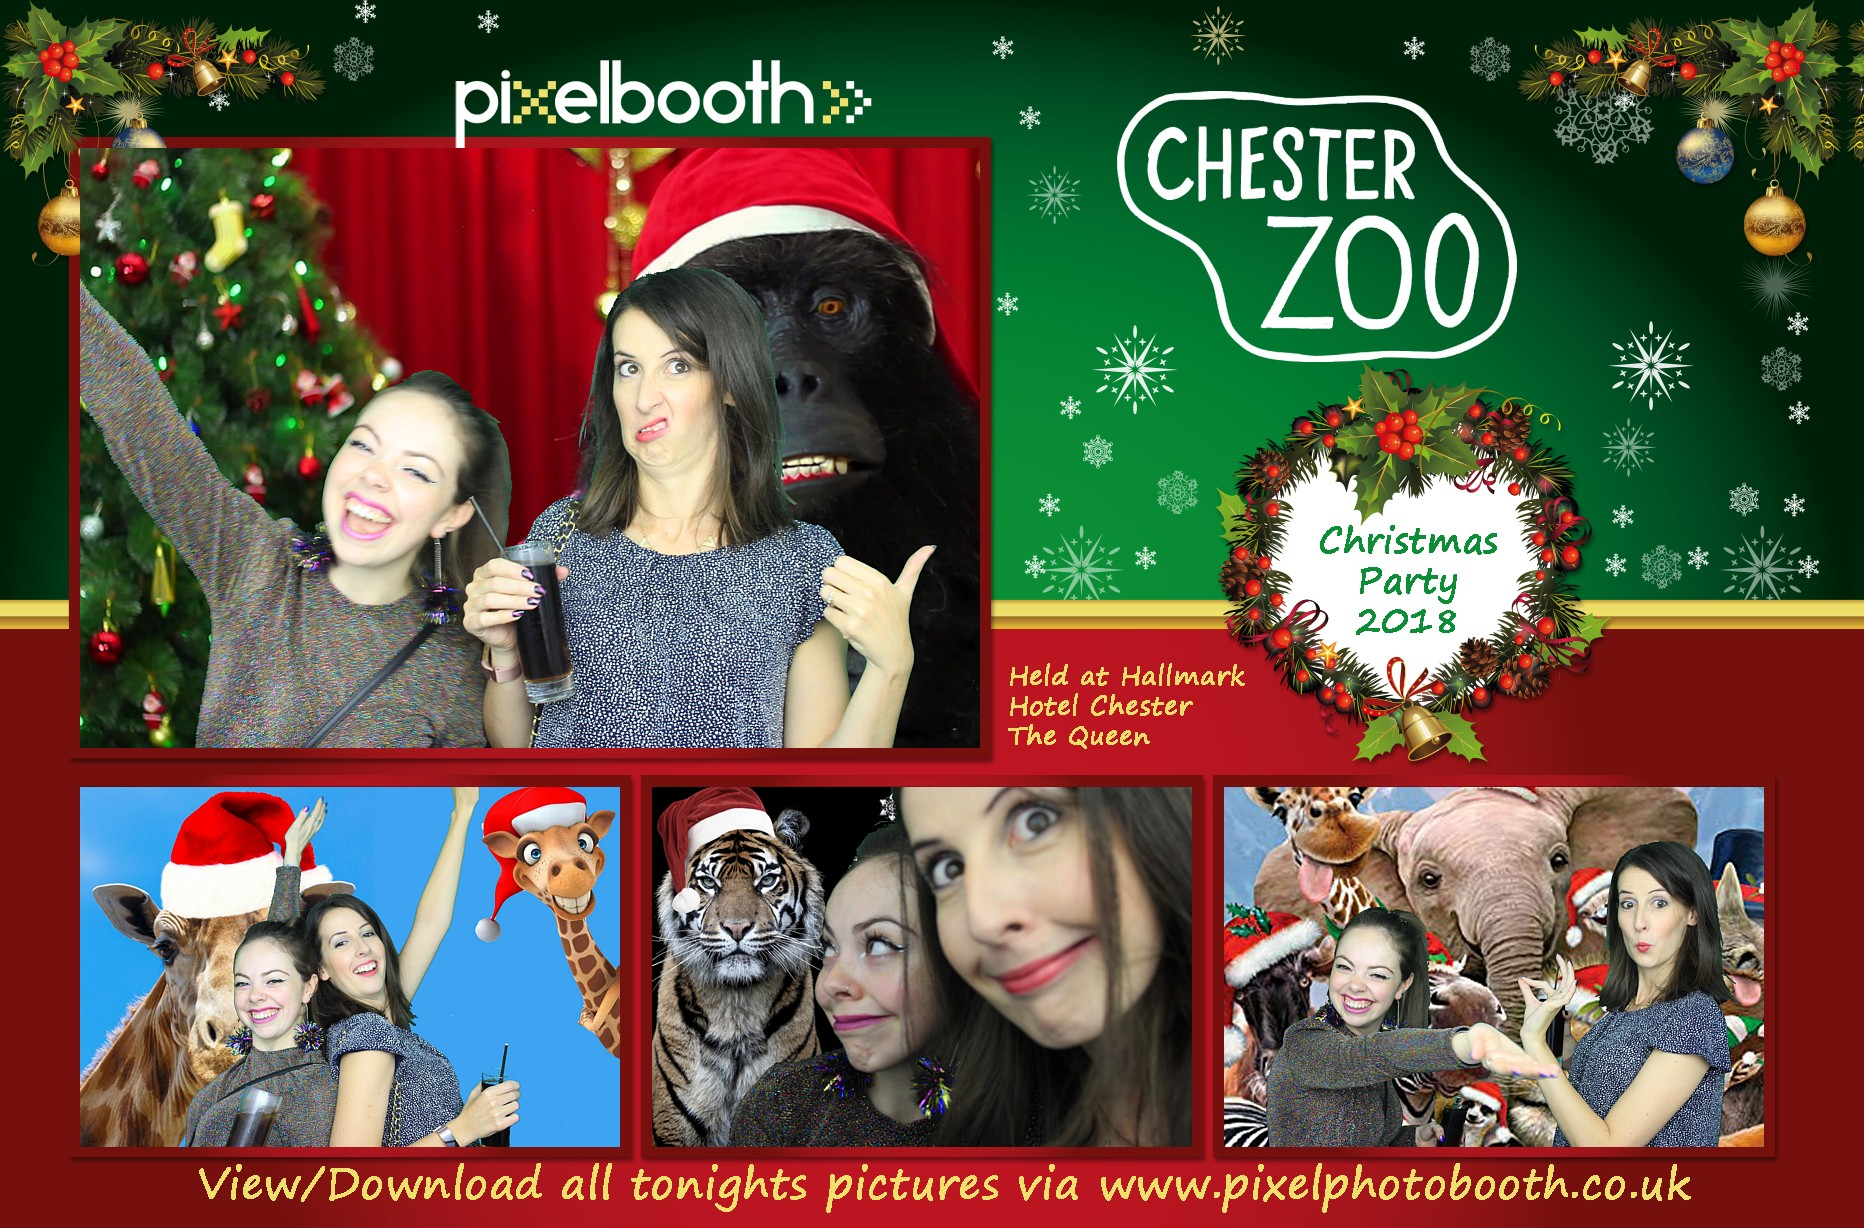 29th Nov 2018: Chester Zoo's Christmas Party at The Queen Hotel